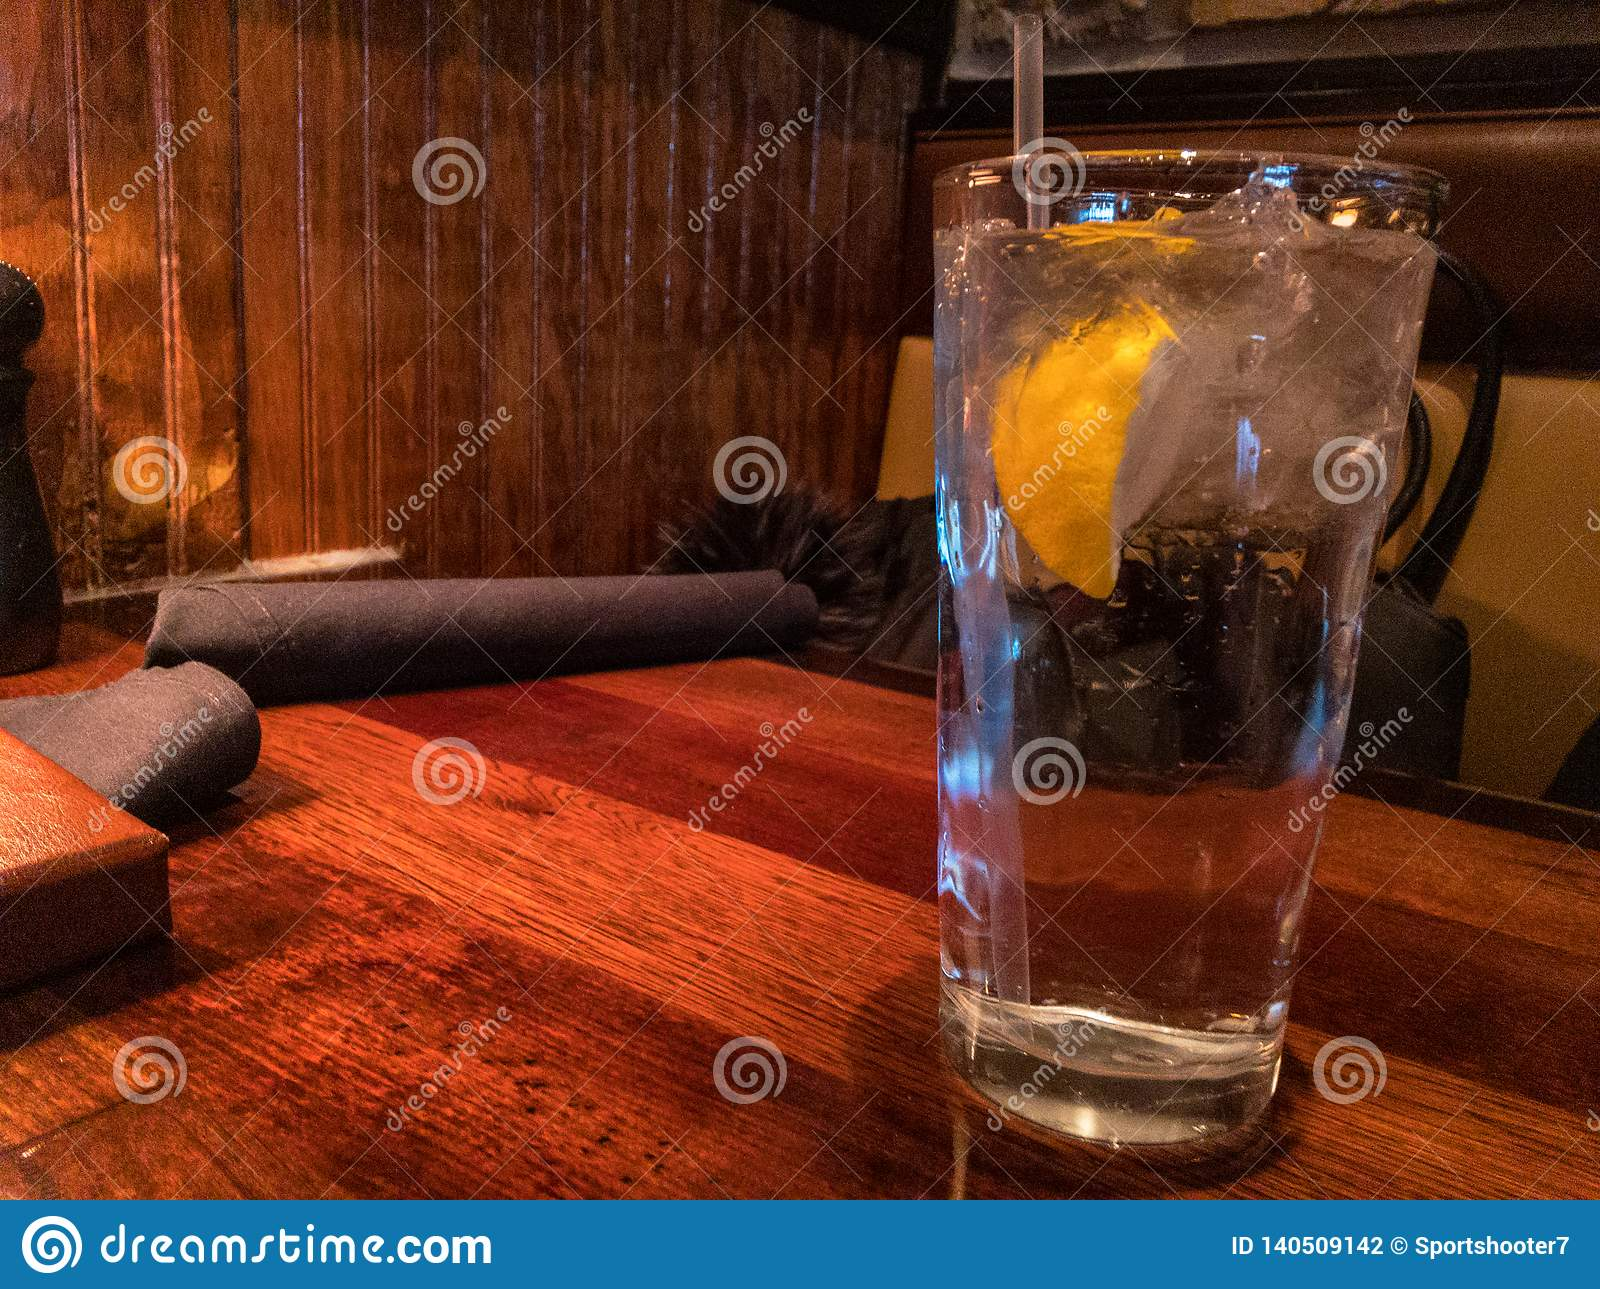 Ice water with lemon and straw on table in restaurant setting.